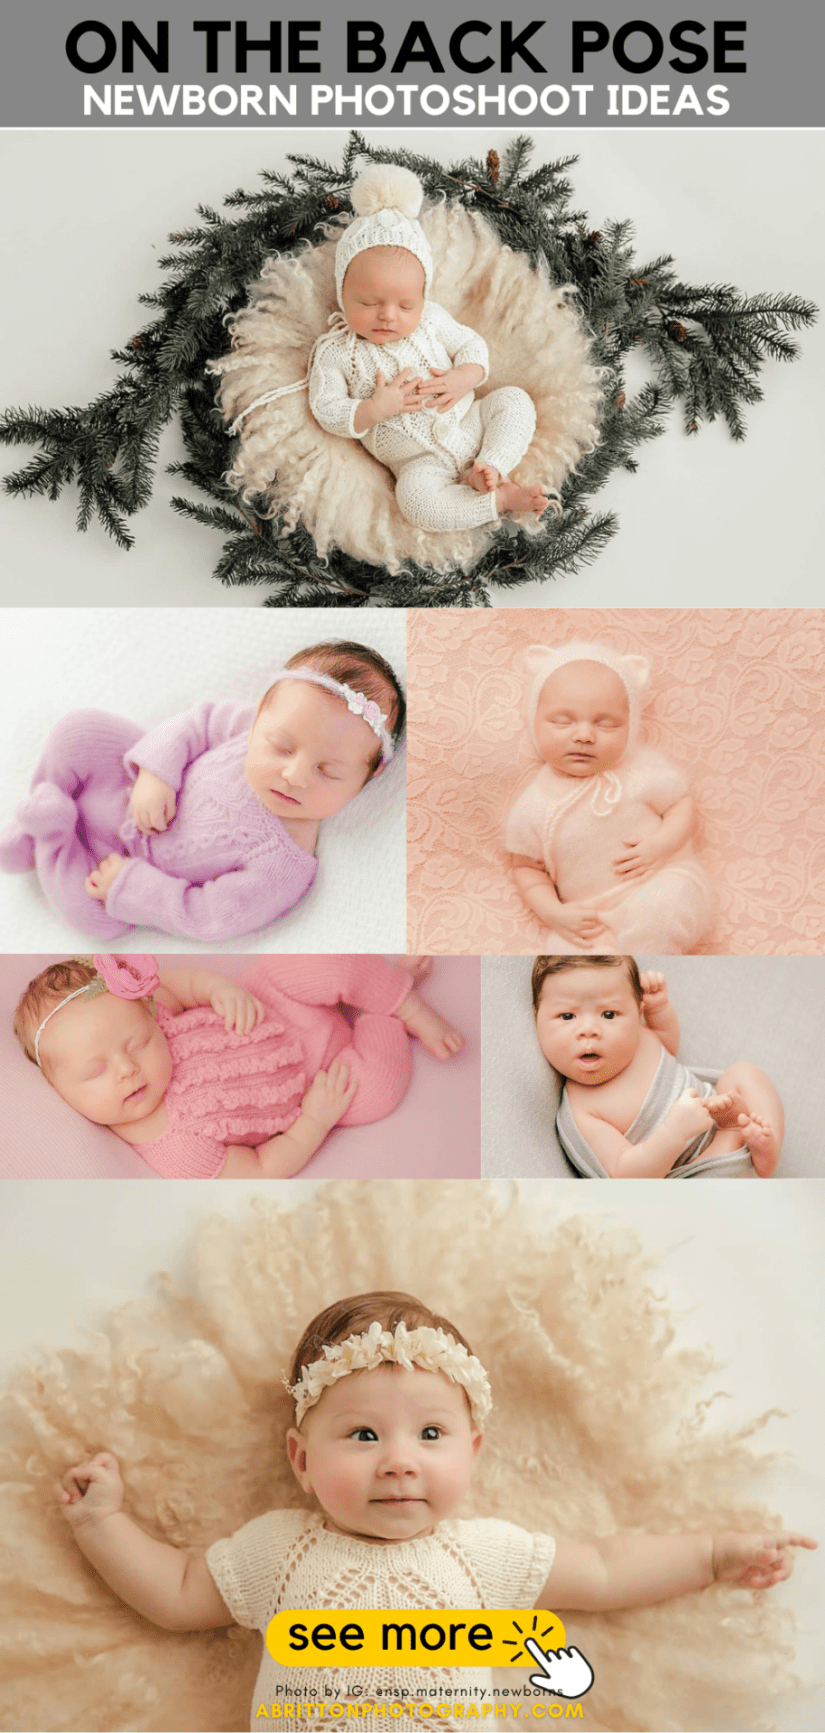 Newborn Photoshoot Poses and Ideas - ON THE BACK ideas